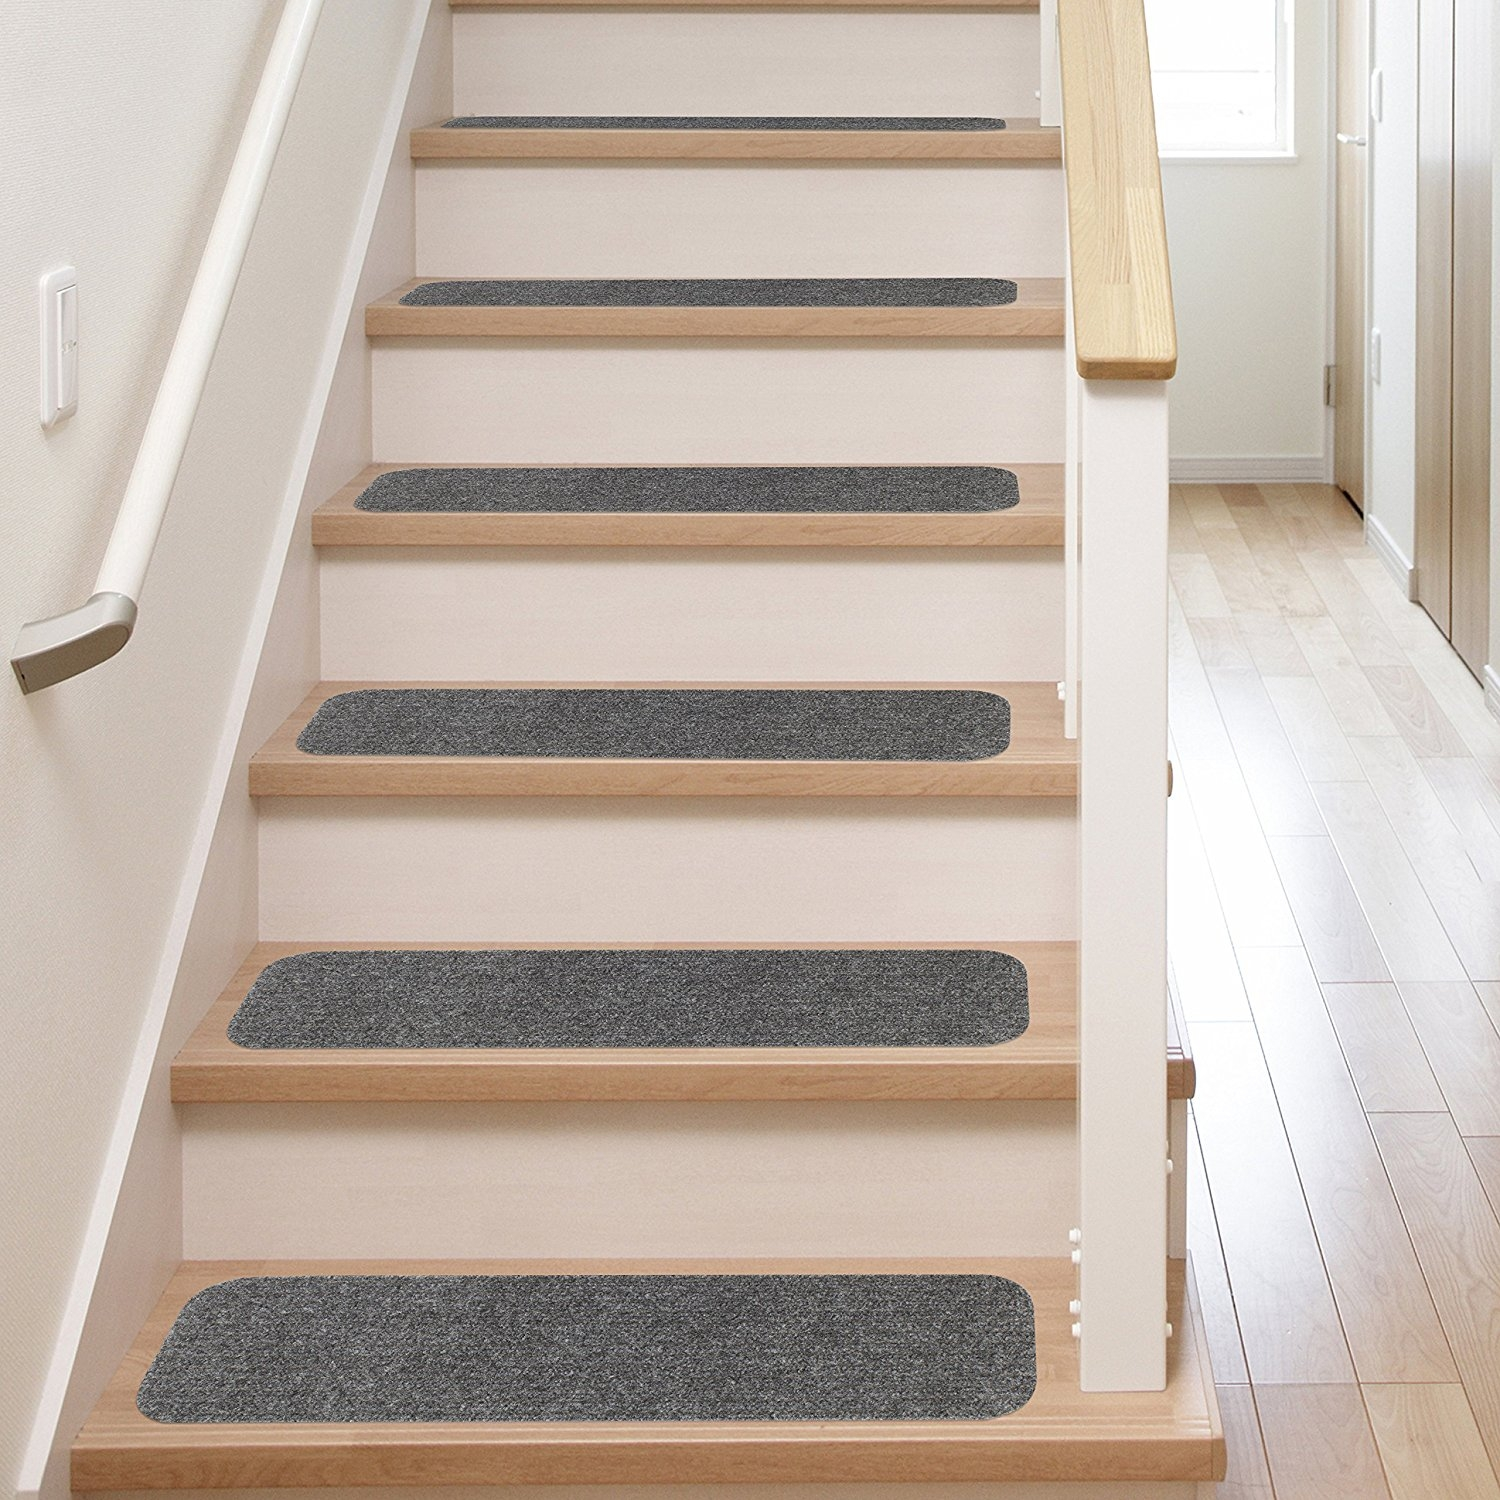 13 Stair Treads Non Slip Carpet Pads Easy Tape Installation Regarding Non Skid Stair Tread Rugs (#1 of 20)